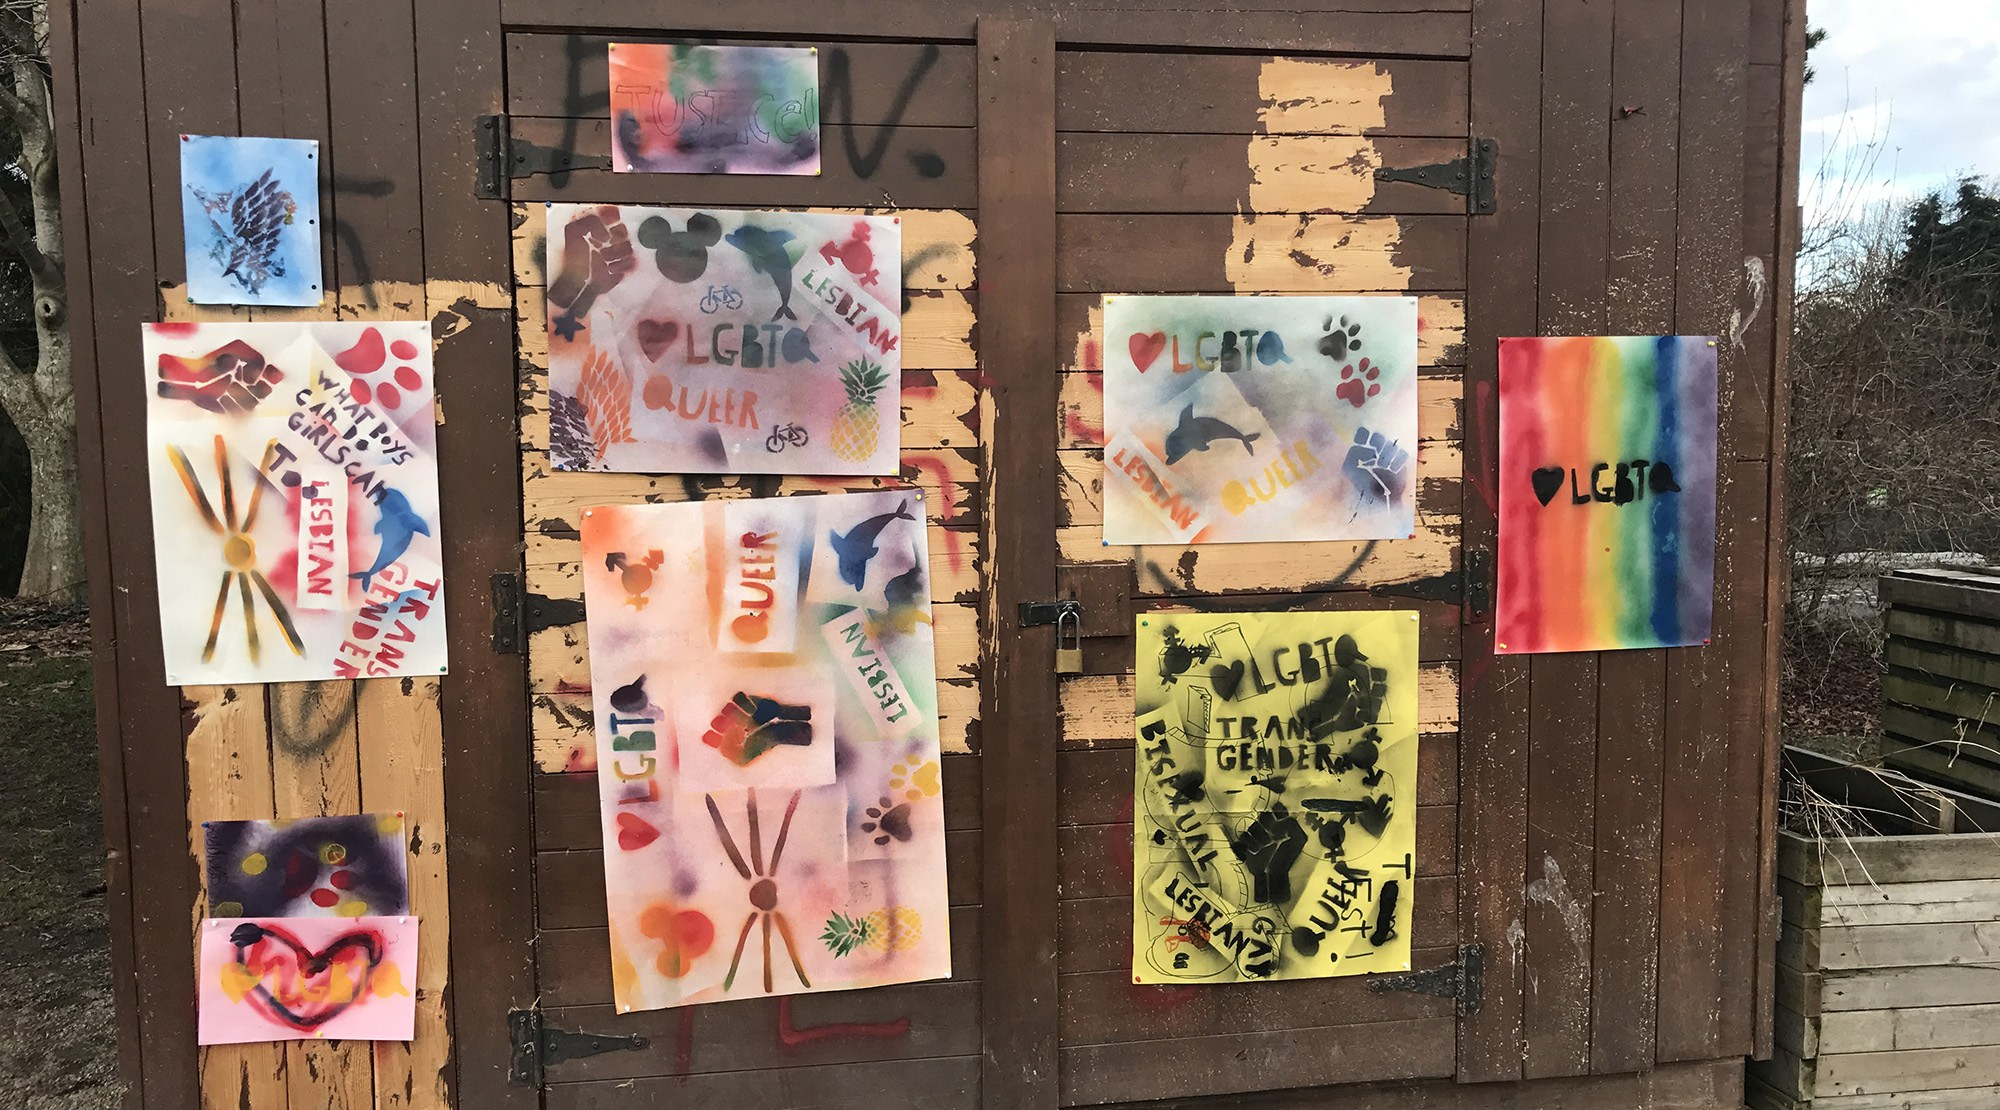 Students posters now cover up the graffiti in charleson park submitted